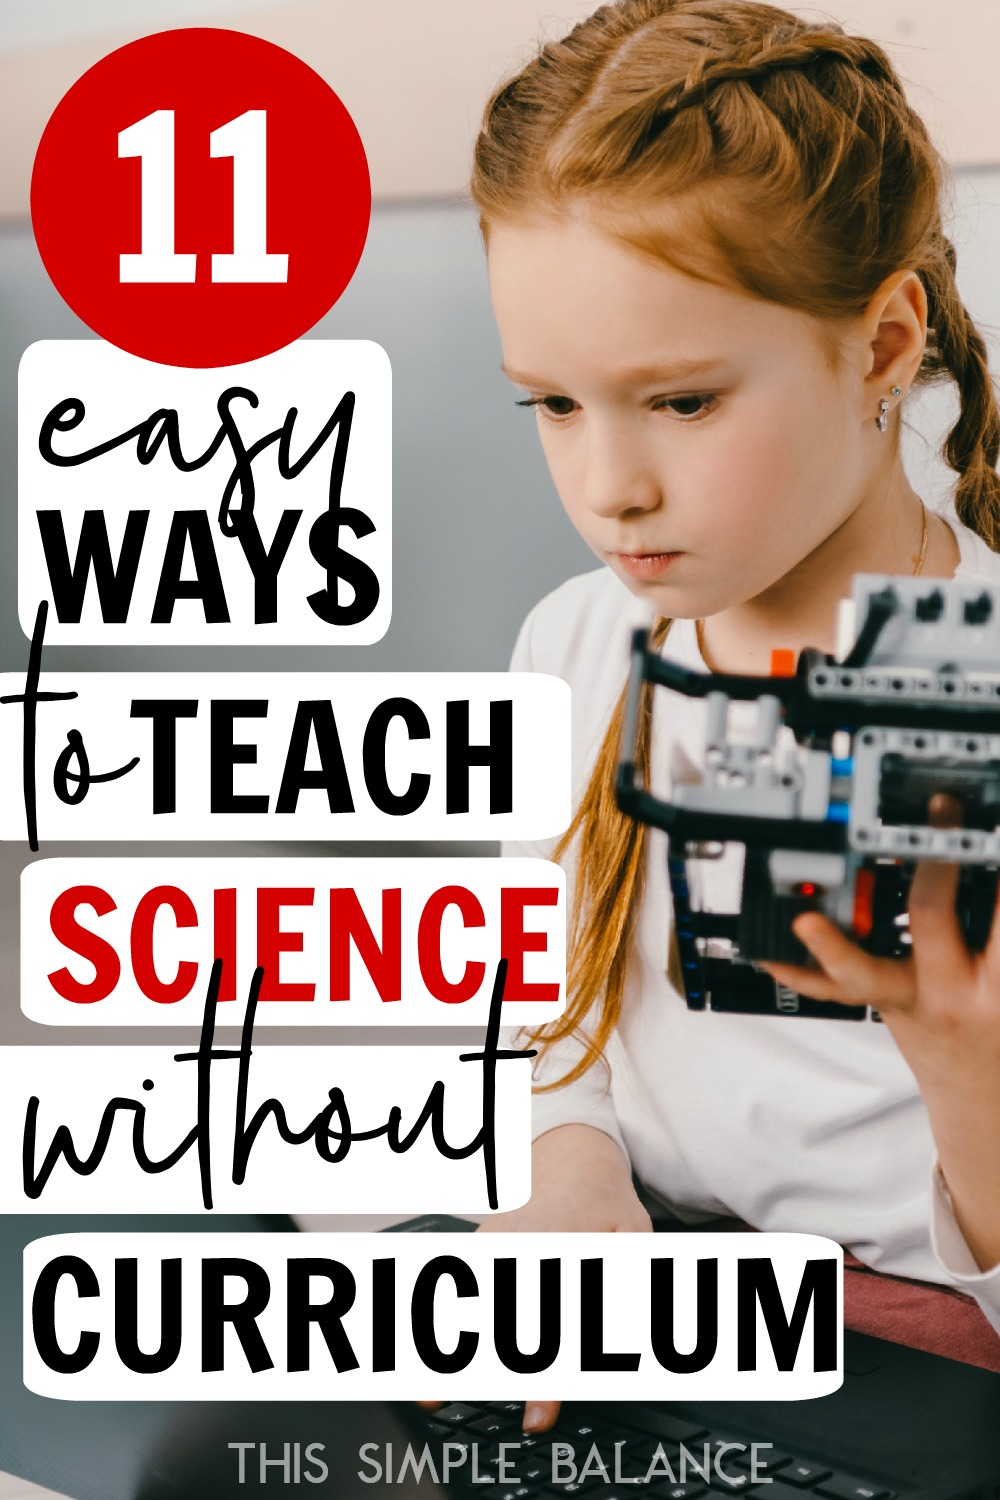 How to Homeschool Science without Curriculum: 11 Super Simple Ideas for Crossing Science off your homeschool stress list!